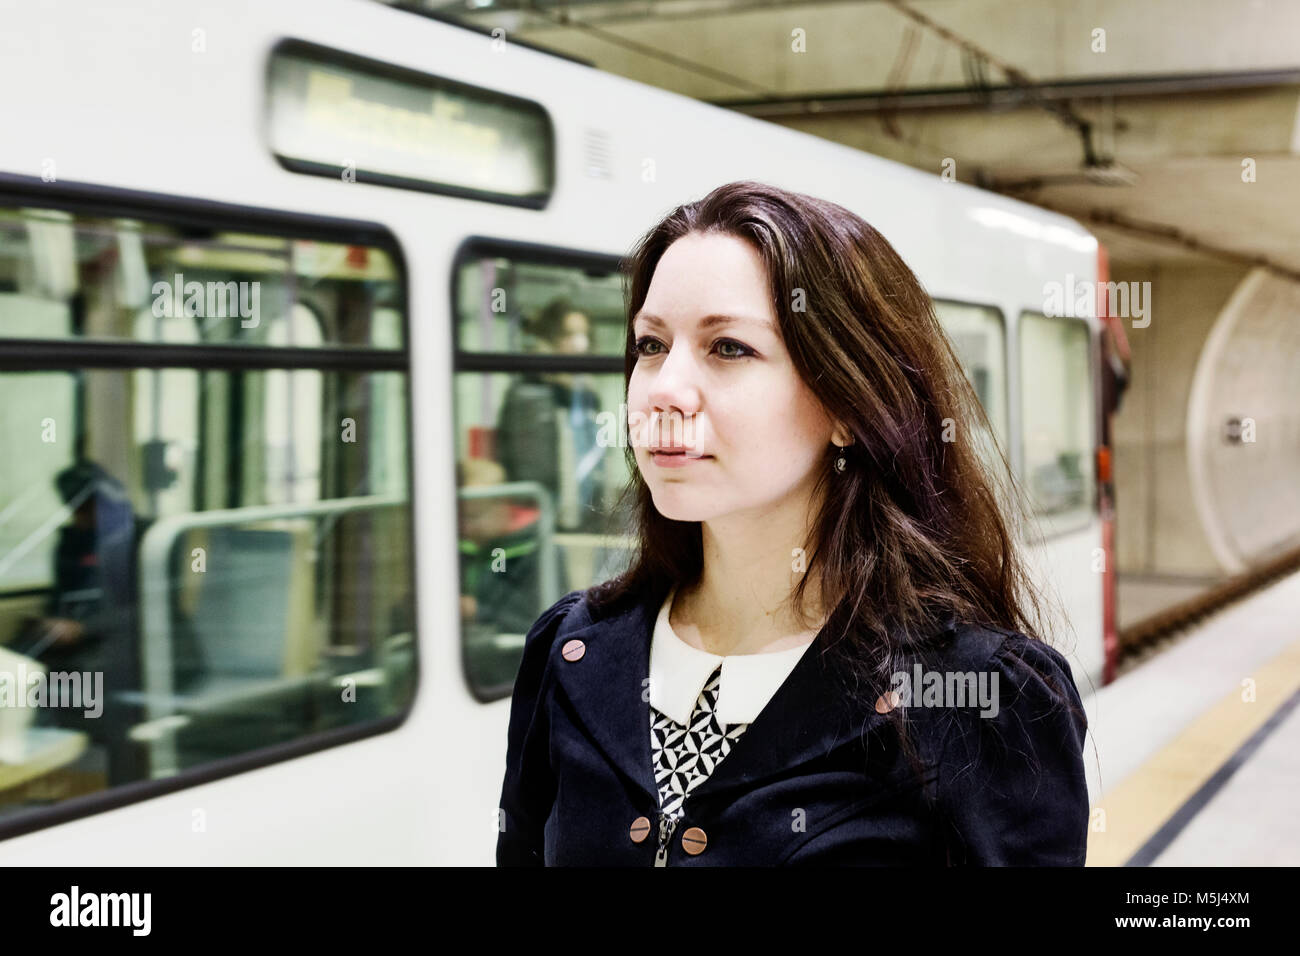 Germany, Cologne, portrait of young woman waiting at underground station platform - Stock Image